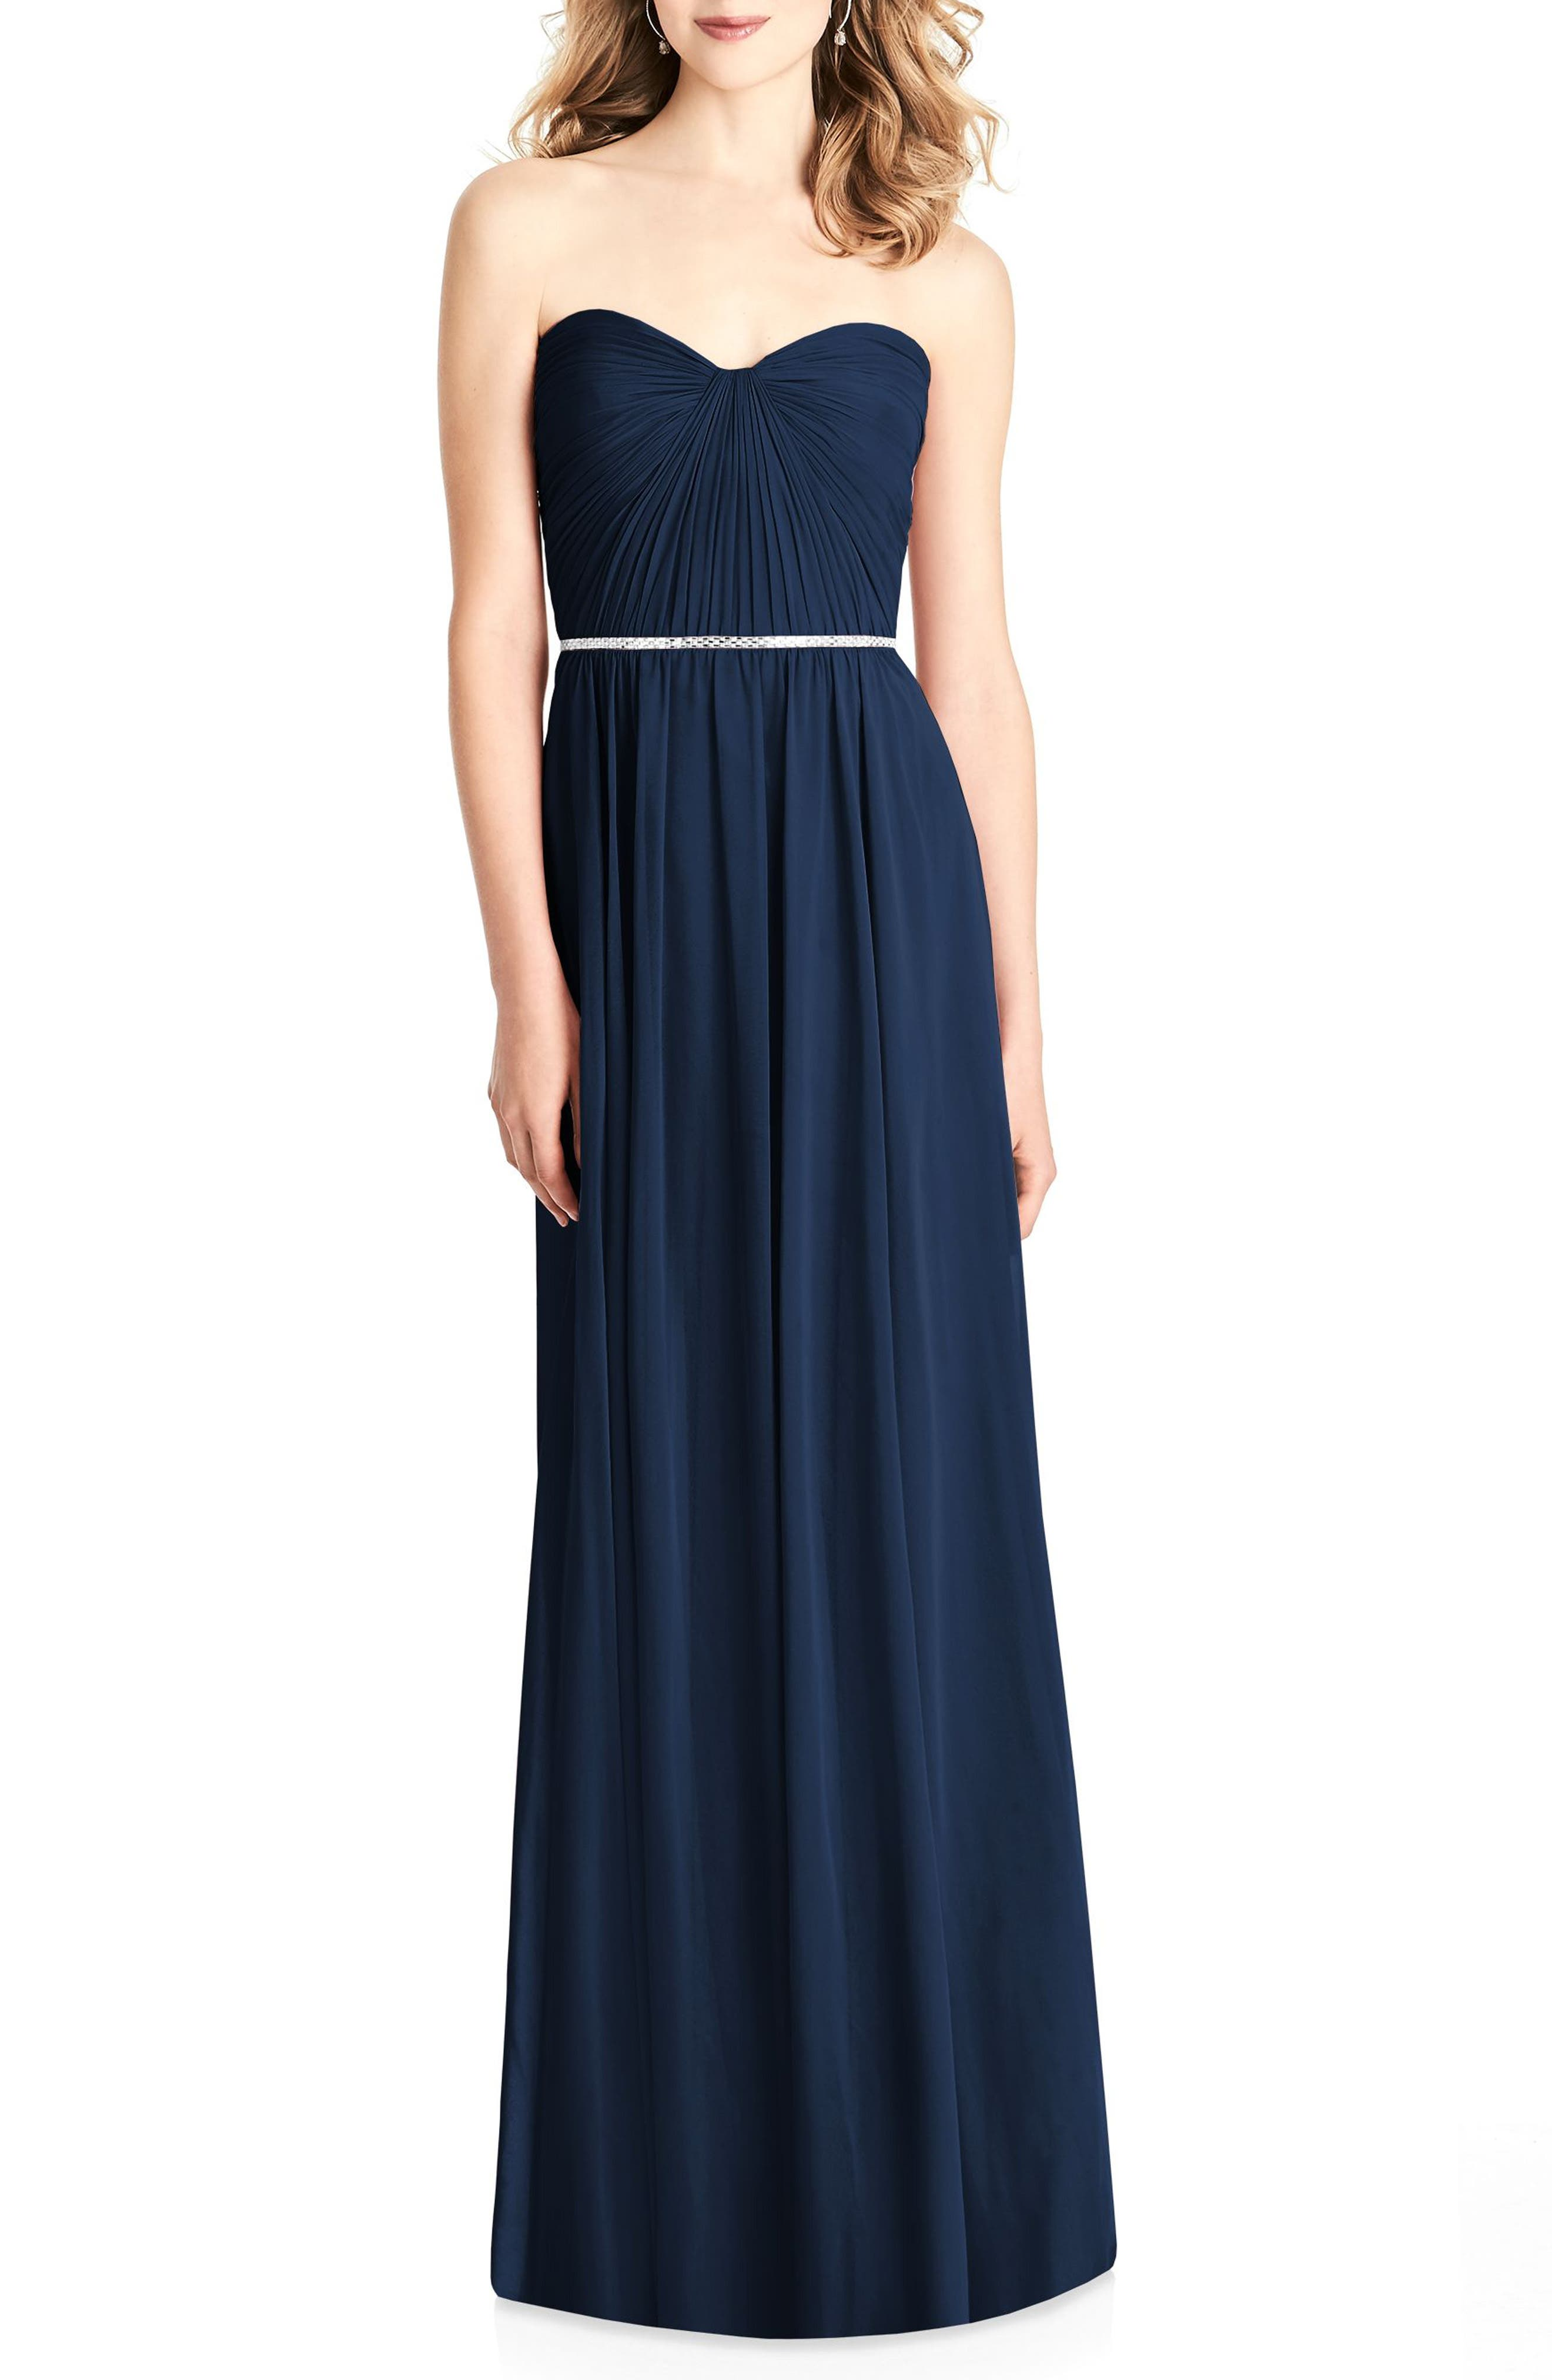 Strapless Chiffon Gown,                             Main thumbnail 1, color,                             MIDNIGHT